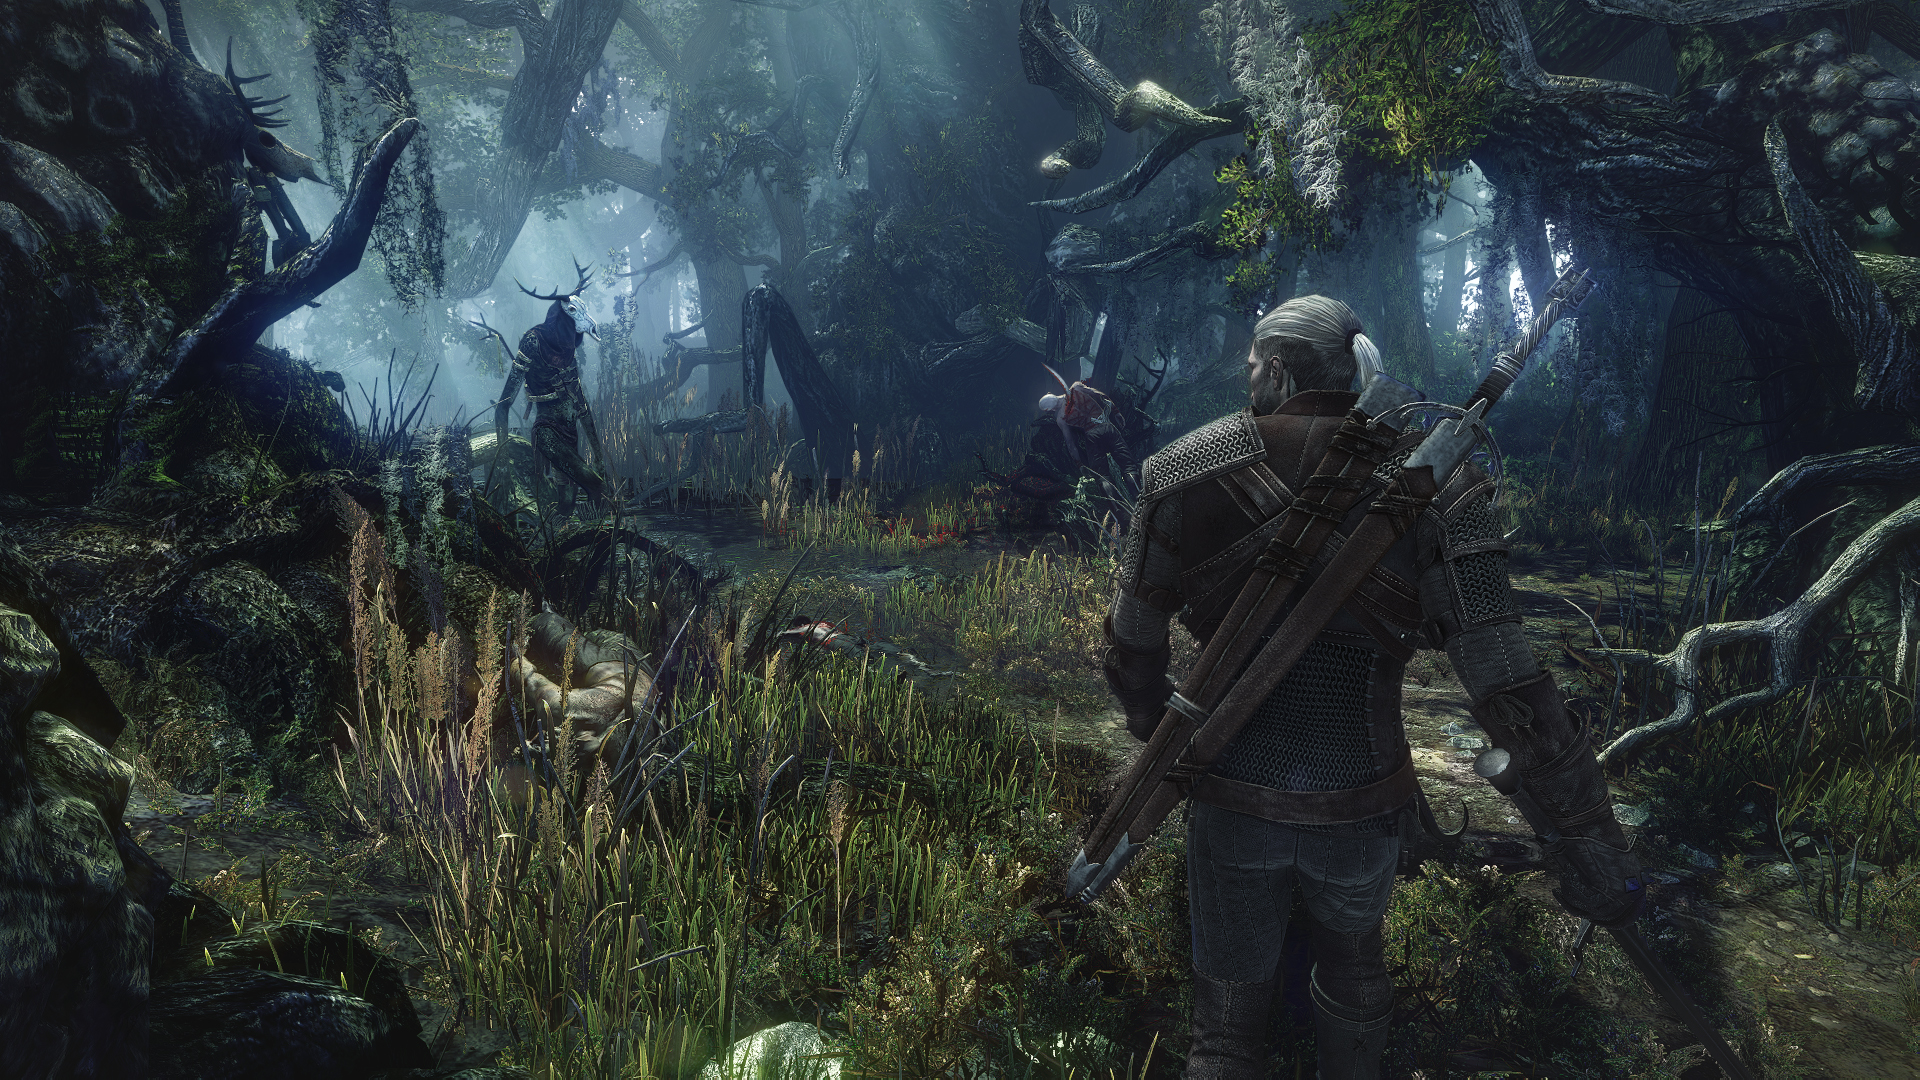 2_Leshen_is_a_very_powerful_monster-hiding_deep_in_the_murky_woods_of_No_Man's_Land